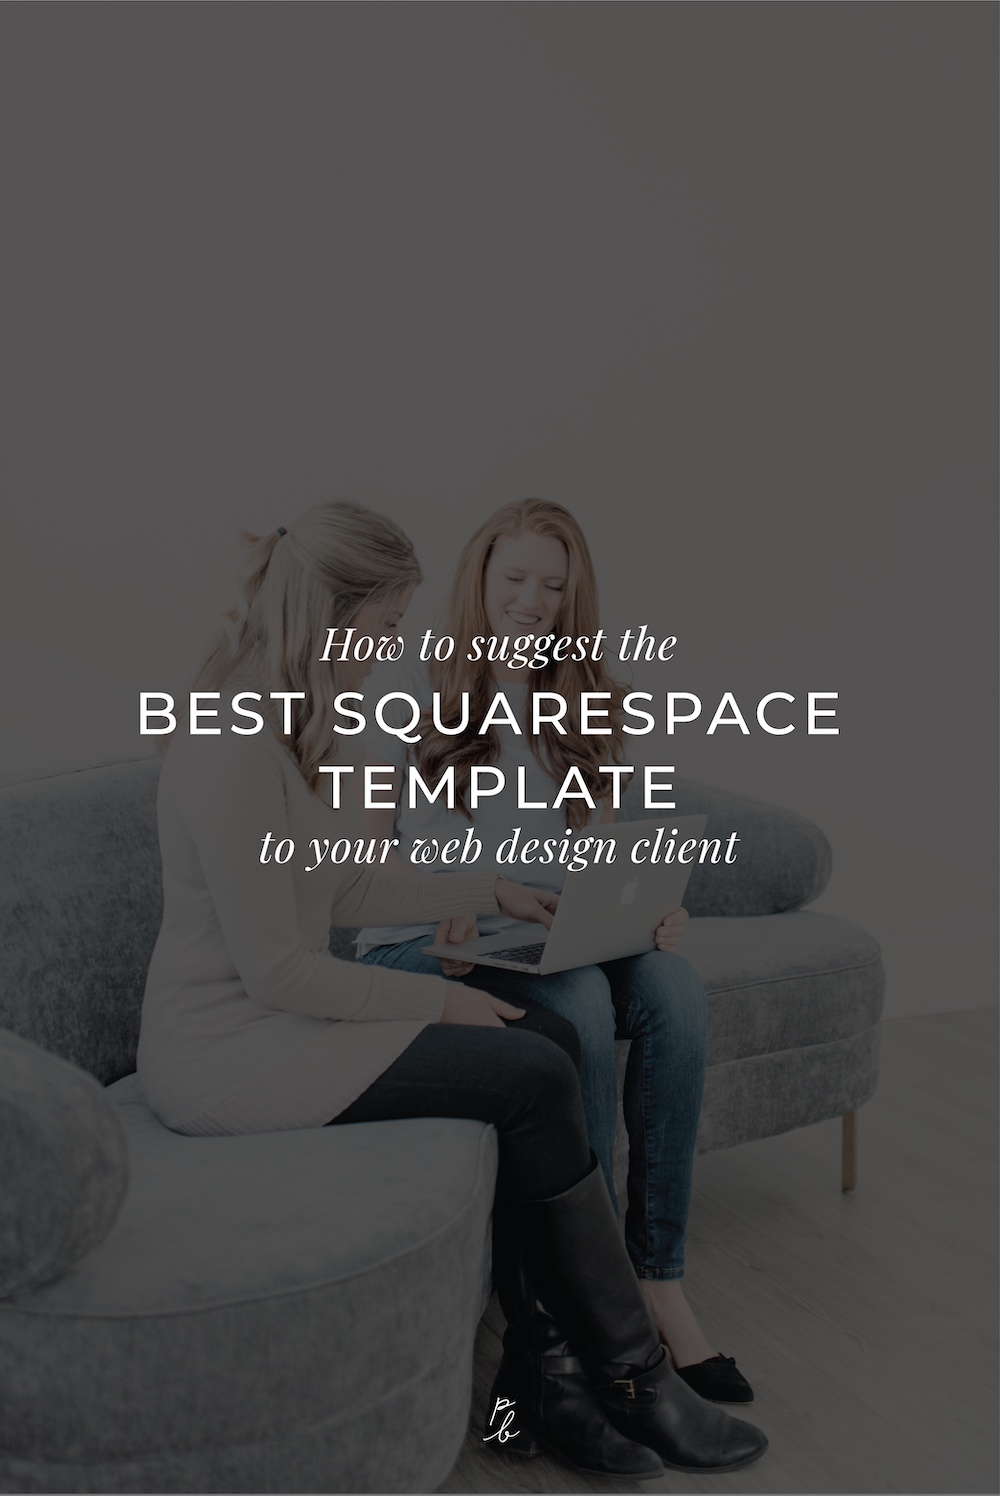 2-How to suggest the best squarespace template to your web design client.jpg